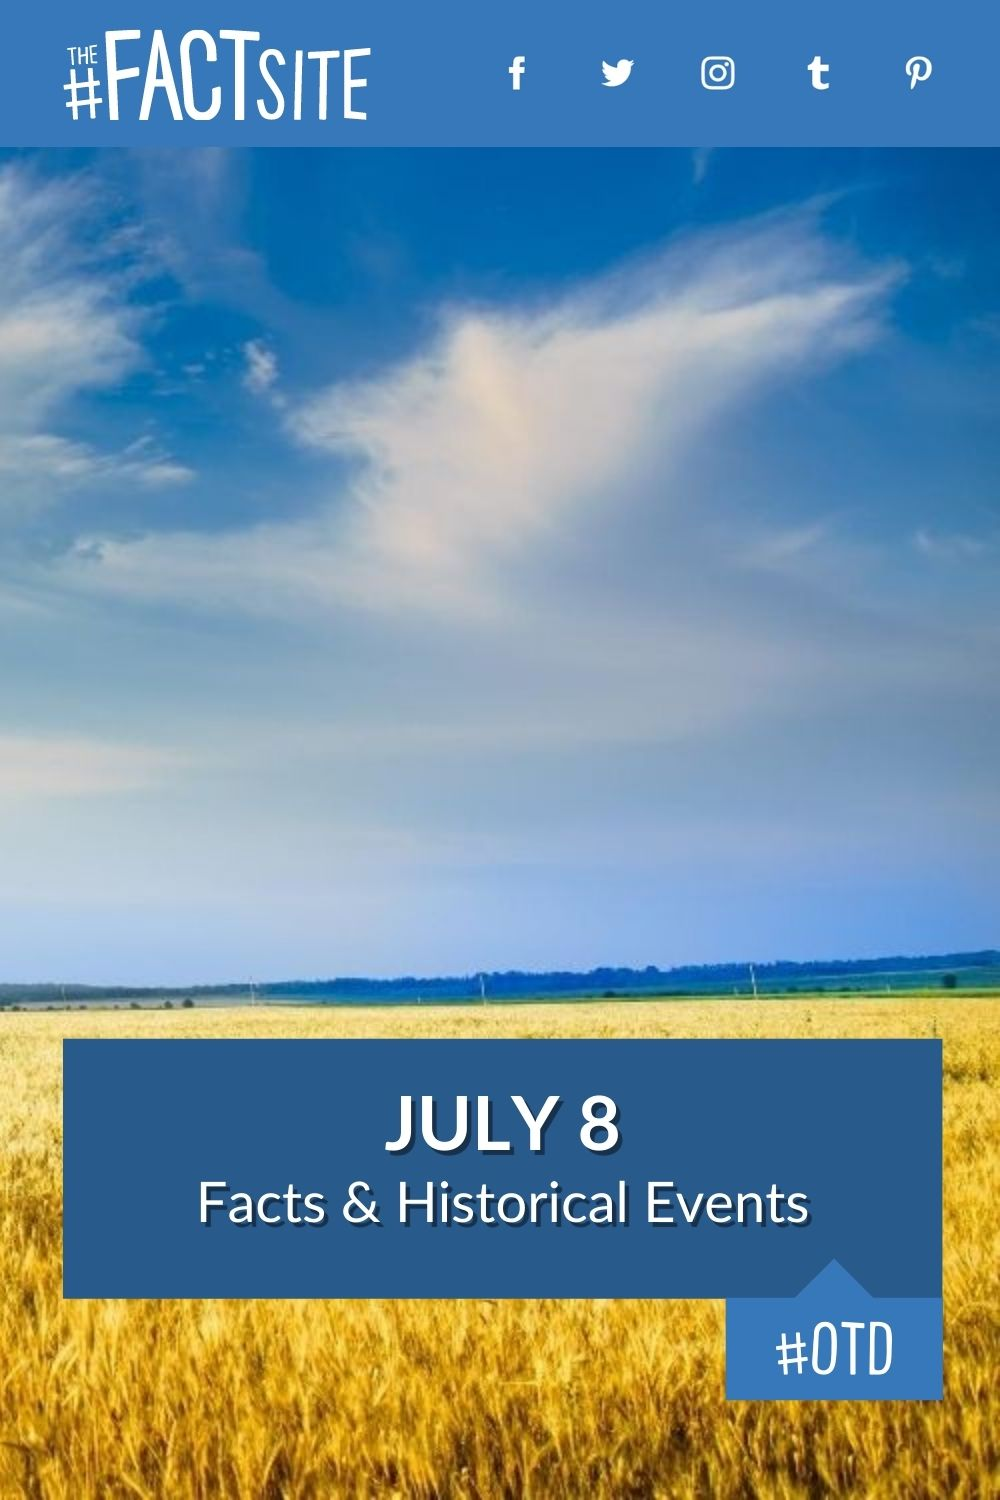 Facts & Historic Events That Happened on July 8